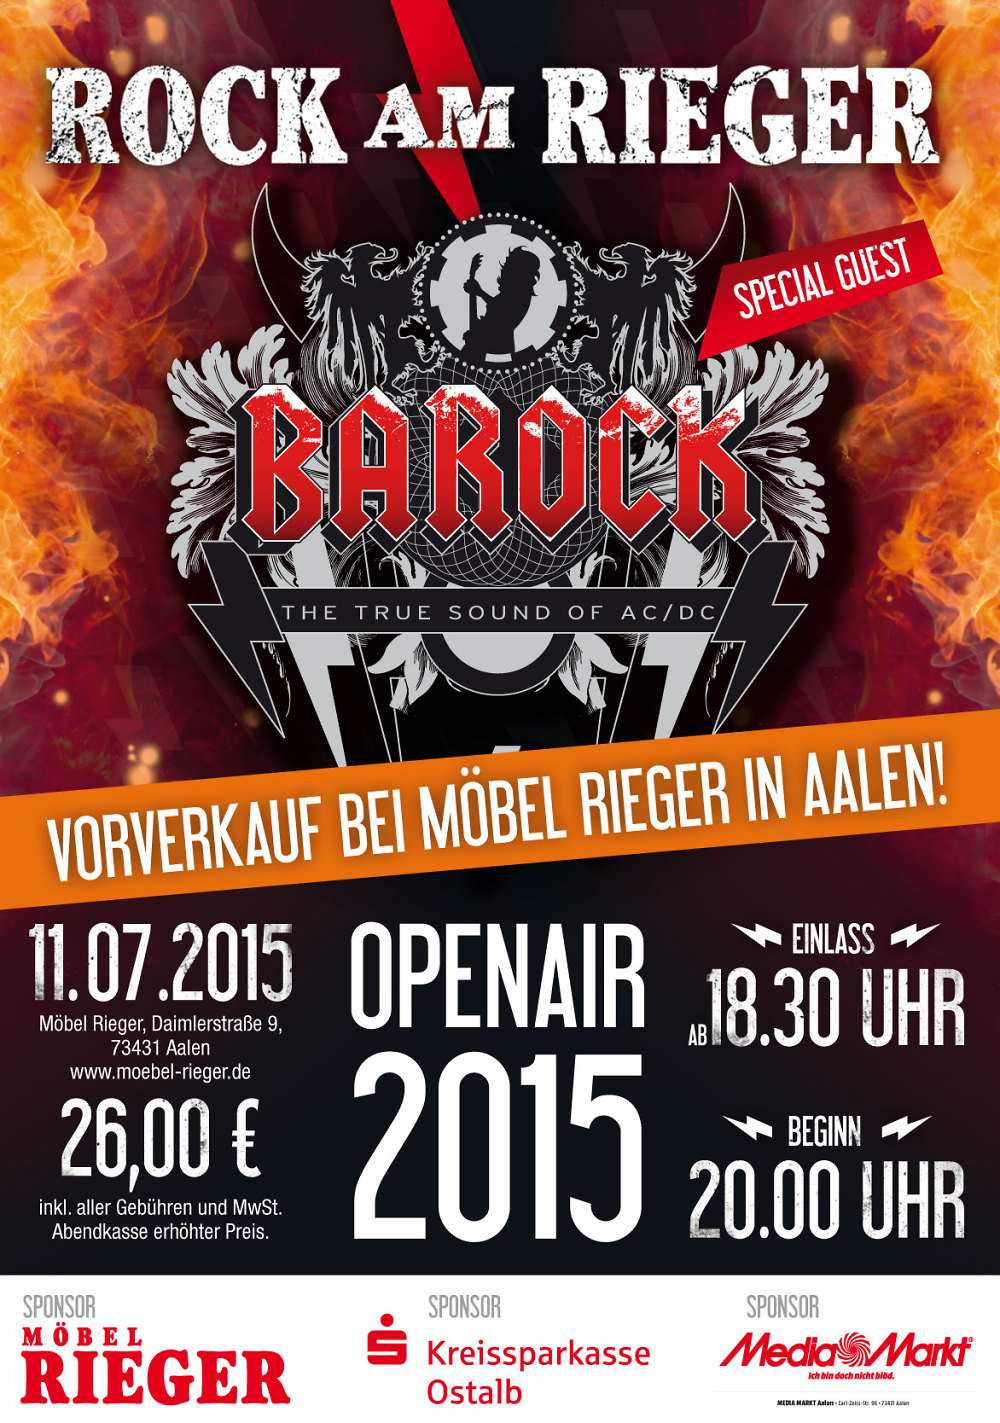 barock europas gr te ac dc tribute show in aalen. Black Bedroom Furniture Sets. Home Design Ideas